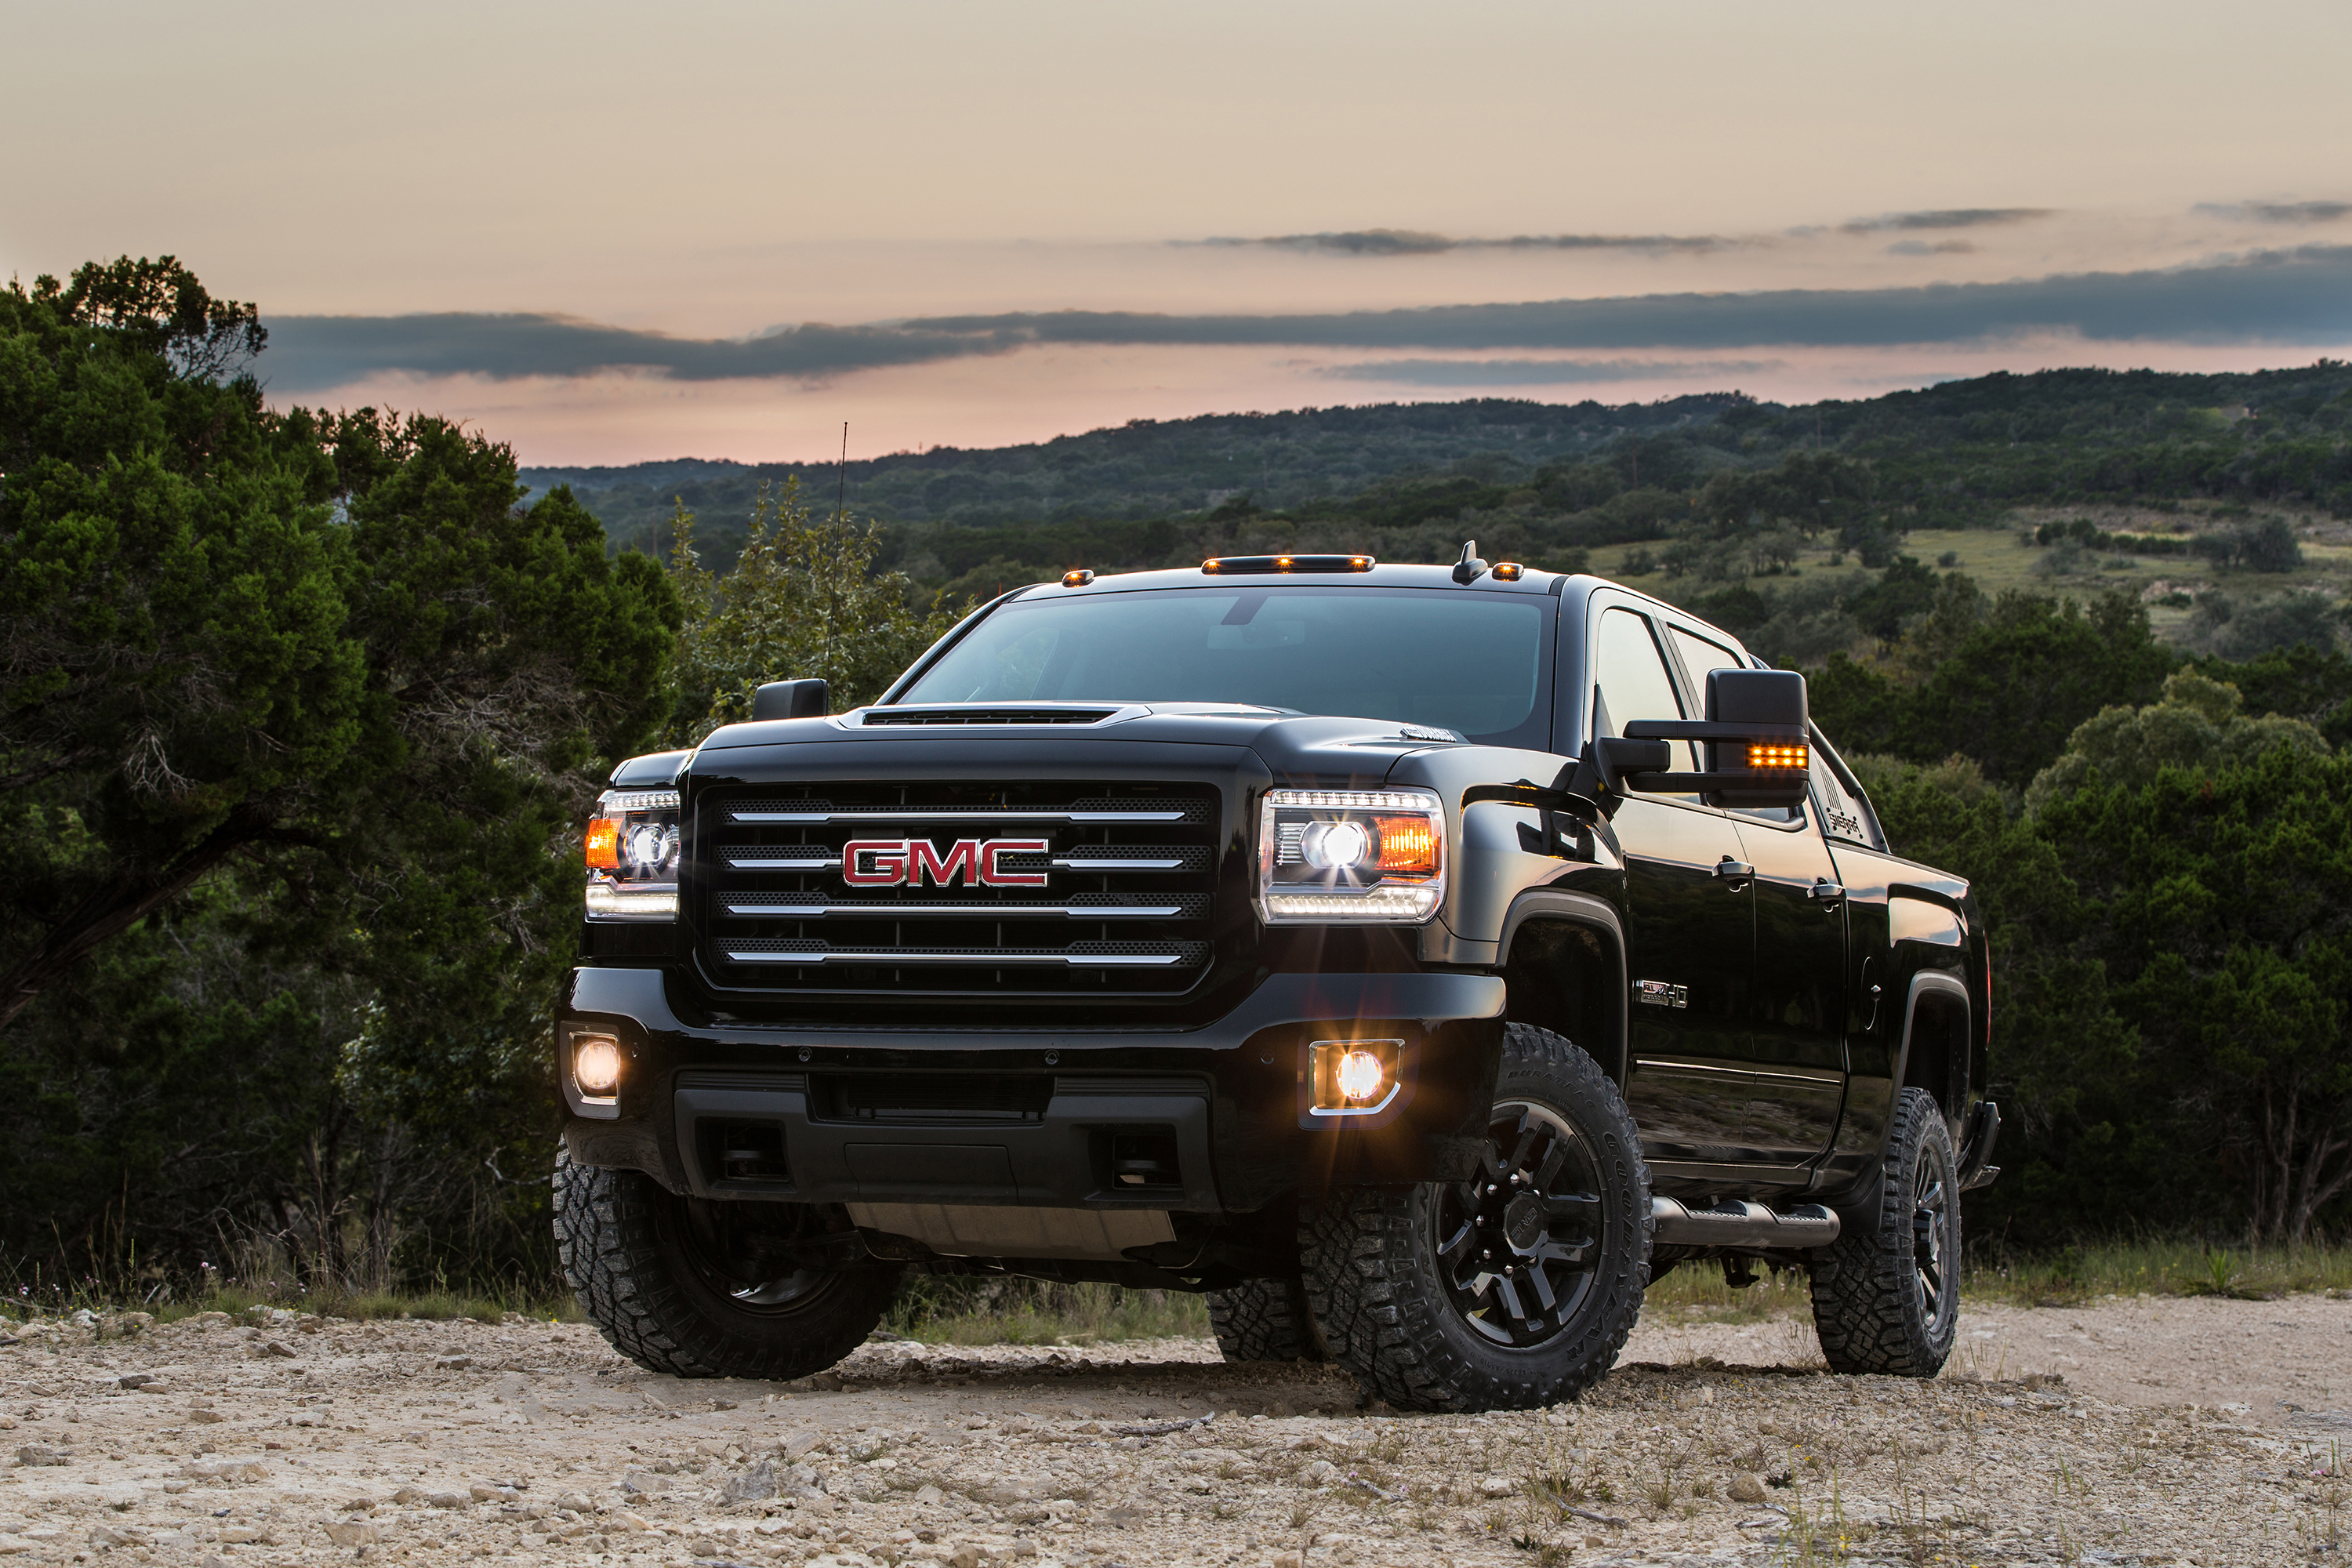 meaner gmc allterrainx new hd gets edition driving x up terrain all auto package toughens with sierra news